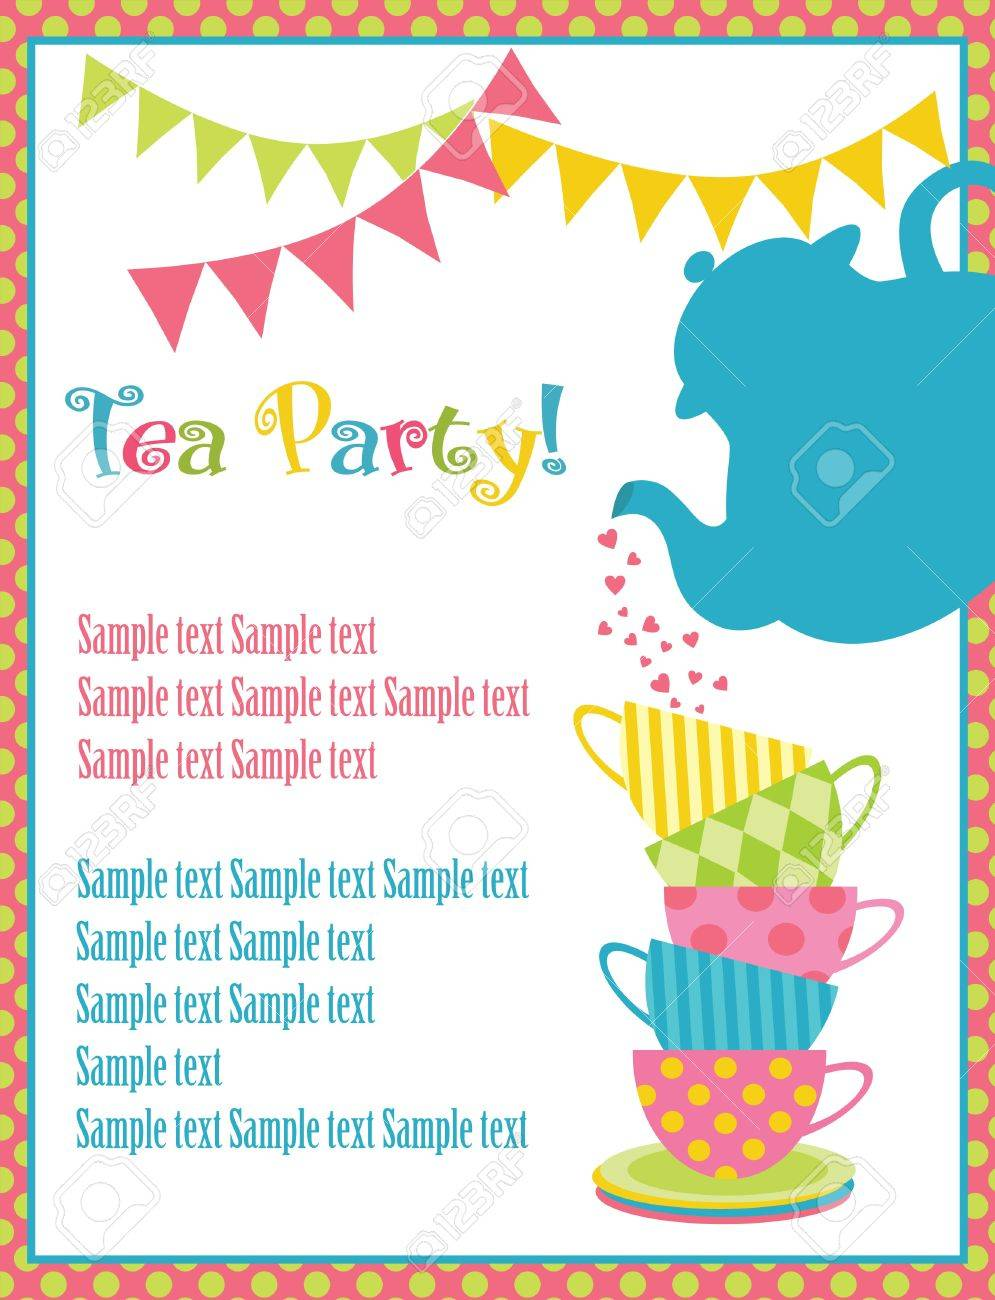 2,049 Tea Party Invitation Stock Vector Illustration And Royalty ...